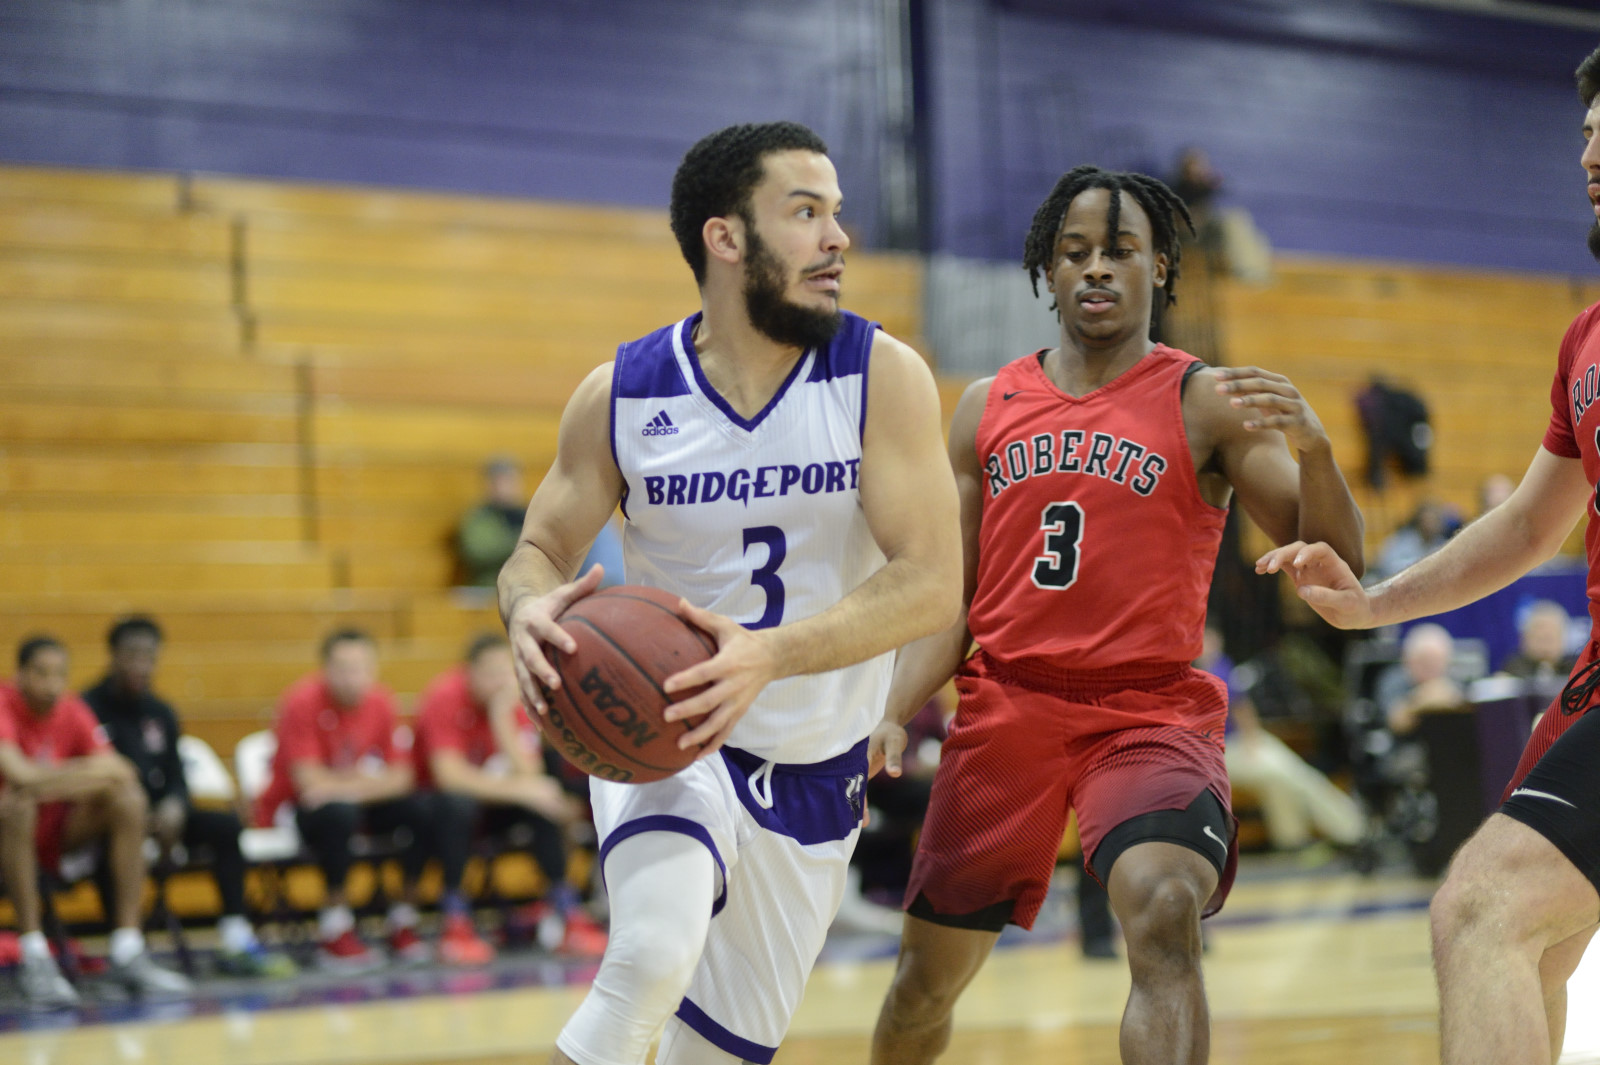 Floyd Preito Nets UB Record 55 Points In Purple Knights' 144-76 Senior Night Win Over LIU Post